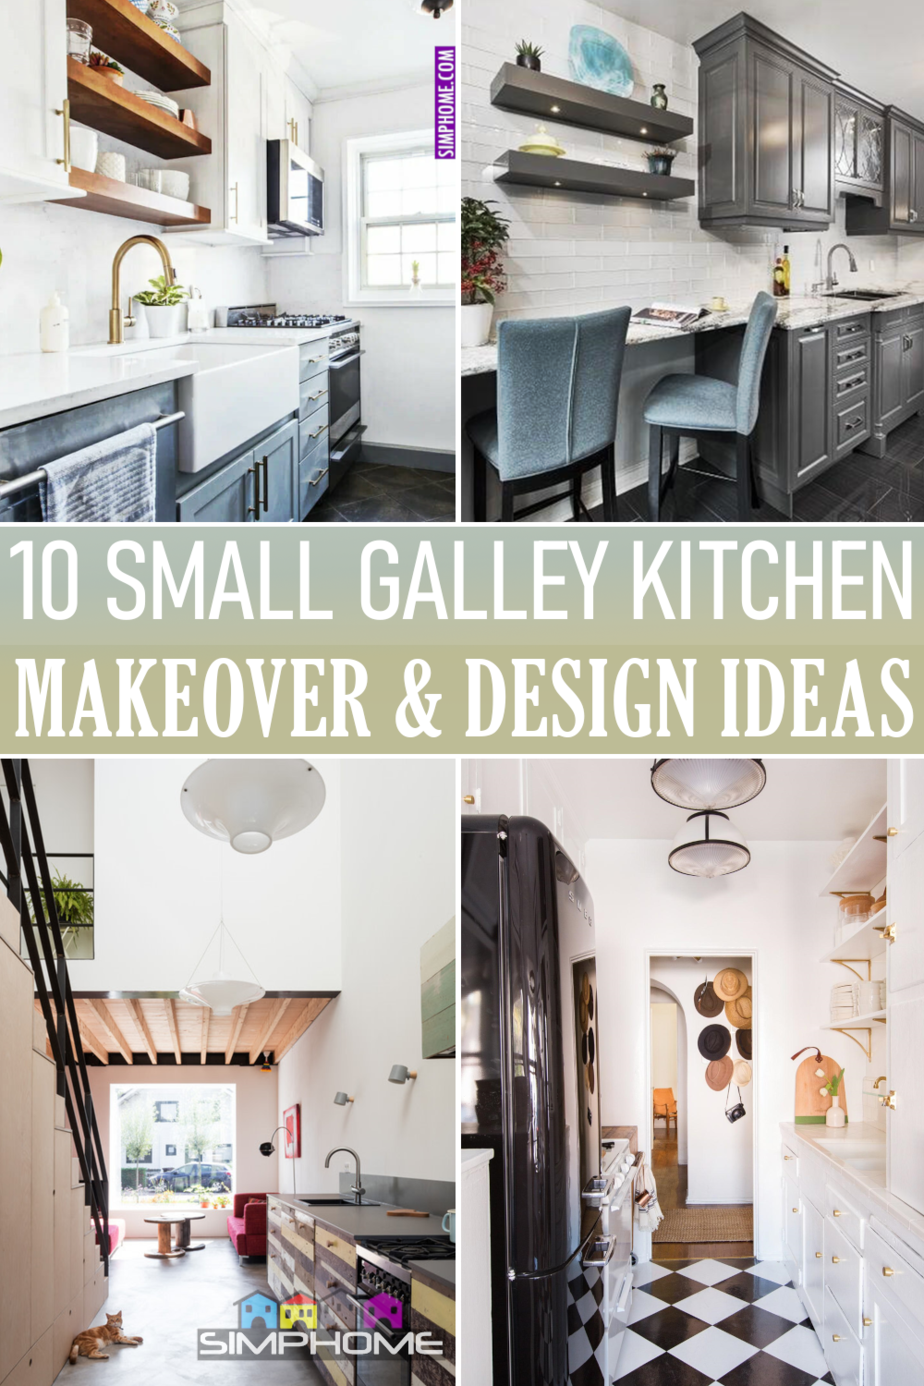 Small Galley Kitchen Makeover via Simphome.comFeatured